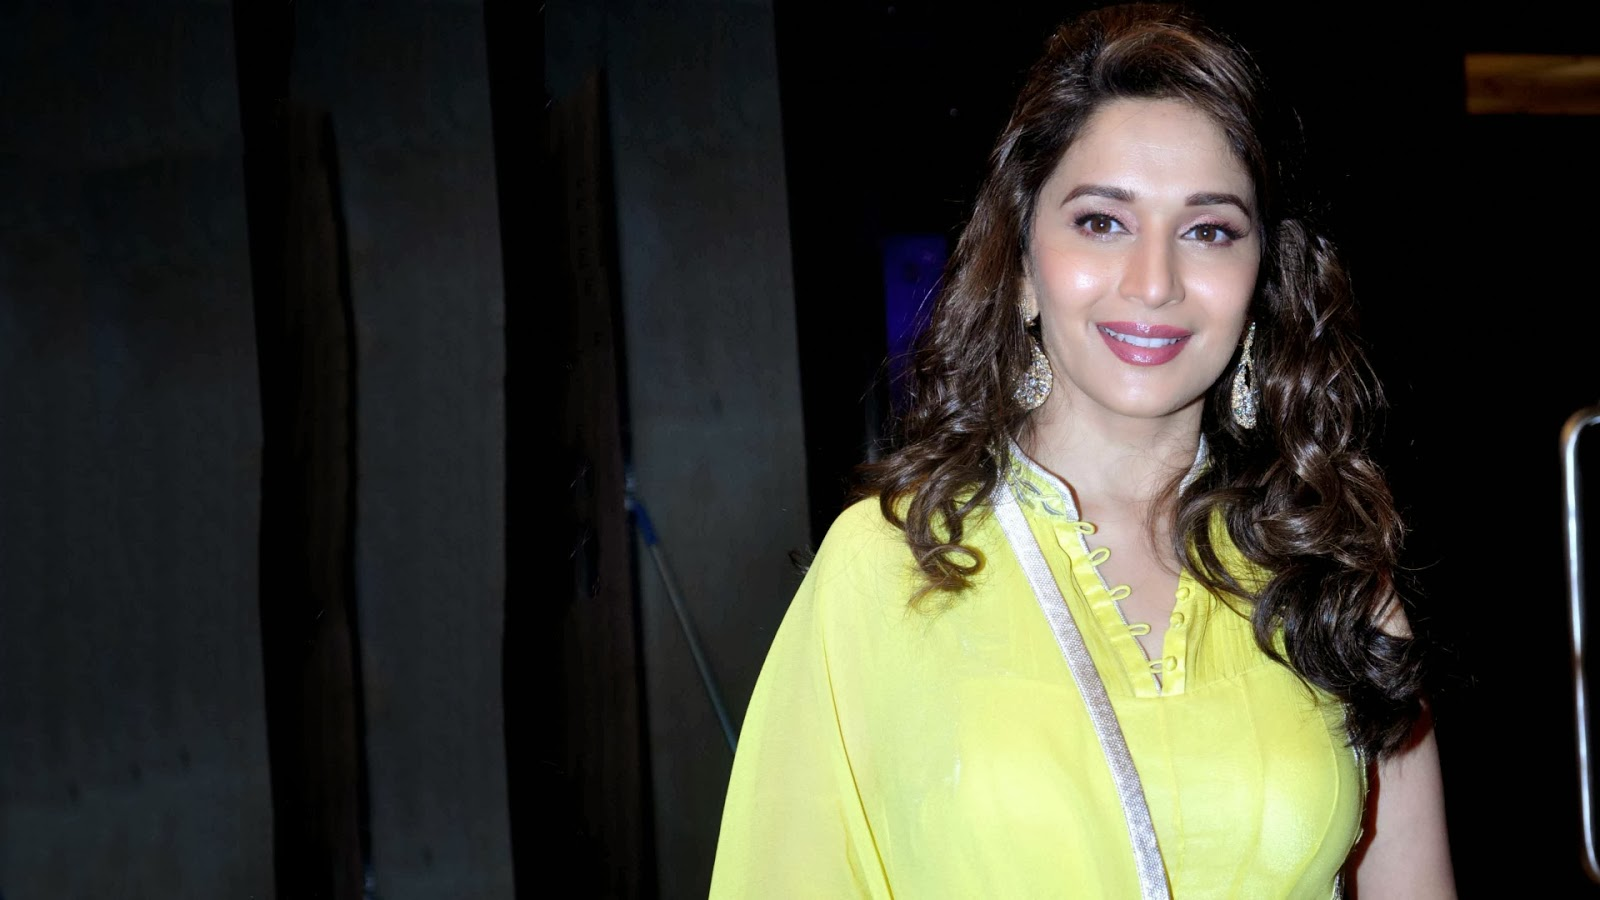 madhuri dixit born 15 may 1967 is an indian film actress who has appeared in hindi films often cited as one of the best actresses in bollywood